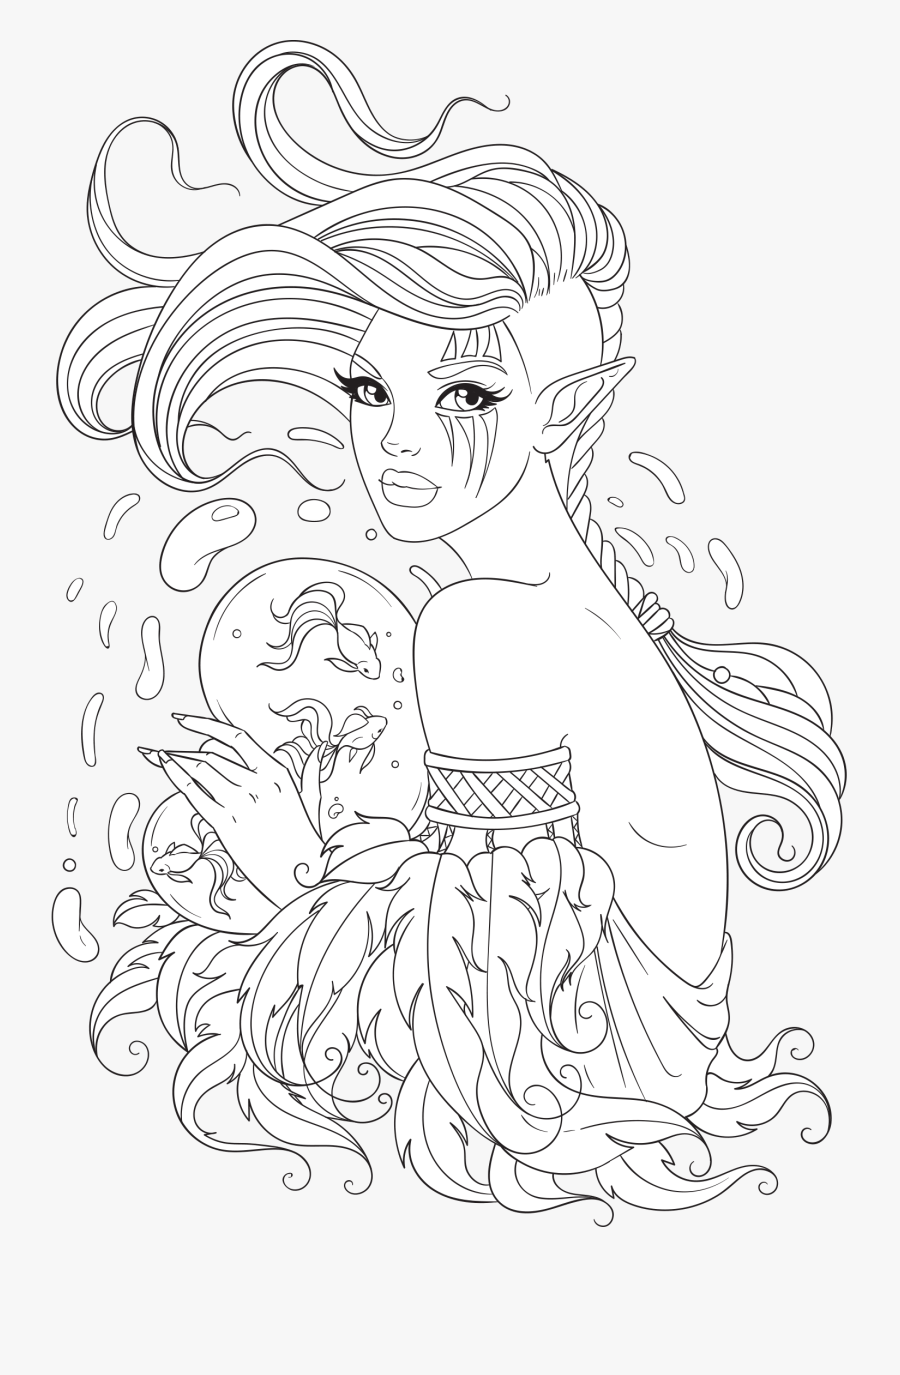 Free Adult Coloring Page - Line Artsy Coloring Pages, Transparent Clipart